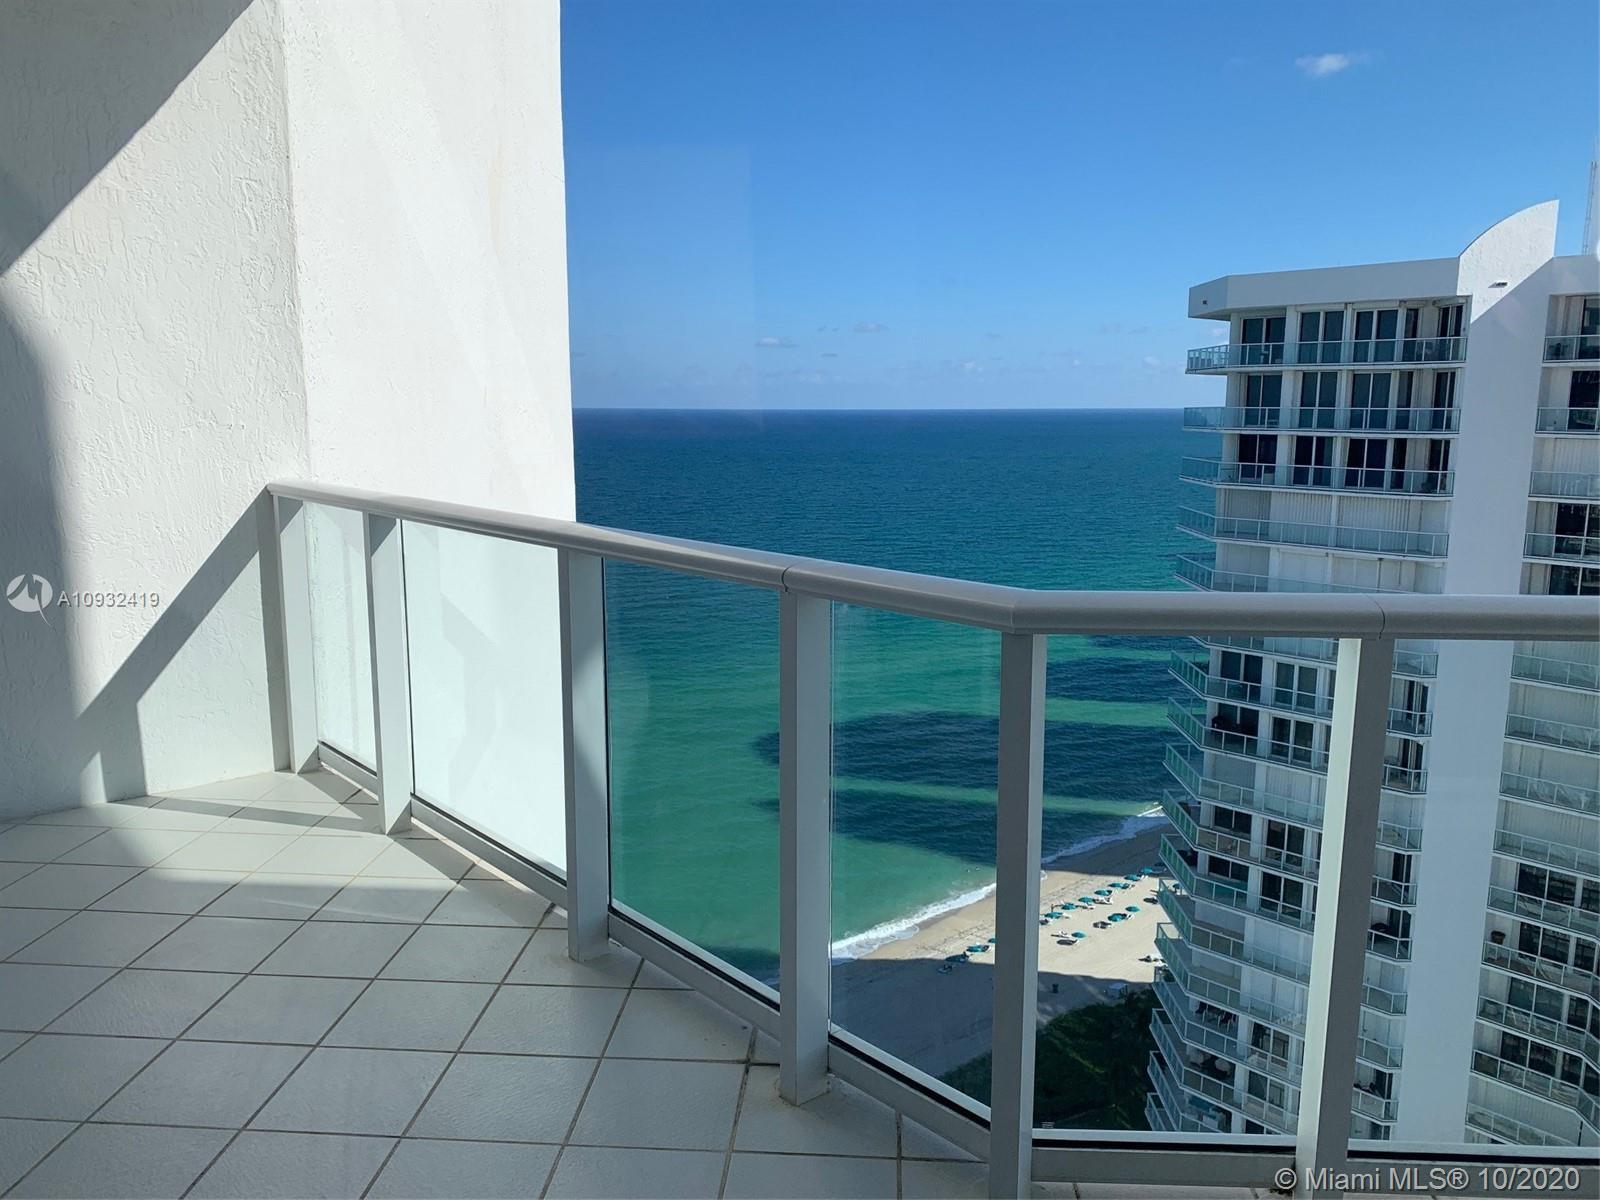 OCEAN VIEW FOR THIS SPACIOUS CORNER UNIT PENTHOUSE IN LUXURY OCEANIA HIGH RISE BUILDING, EAST AND WE